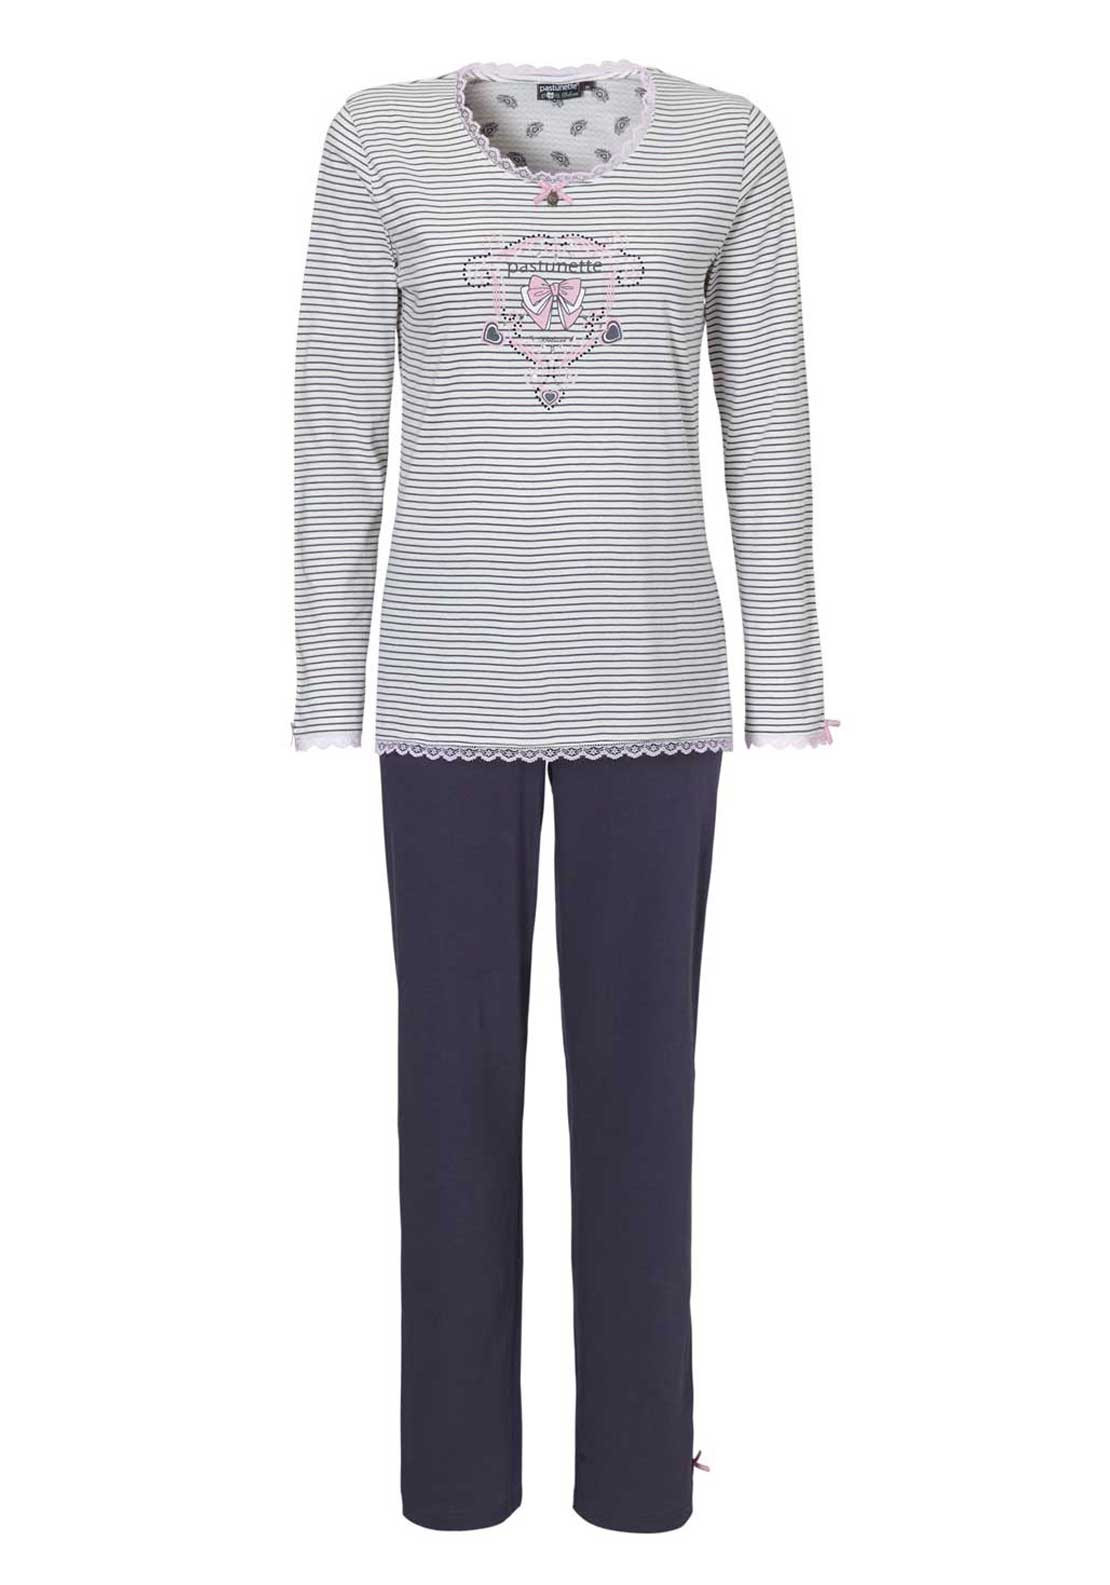 Pastunette Graphic Print Striped Pyjama Set, Purple Multi